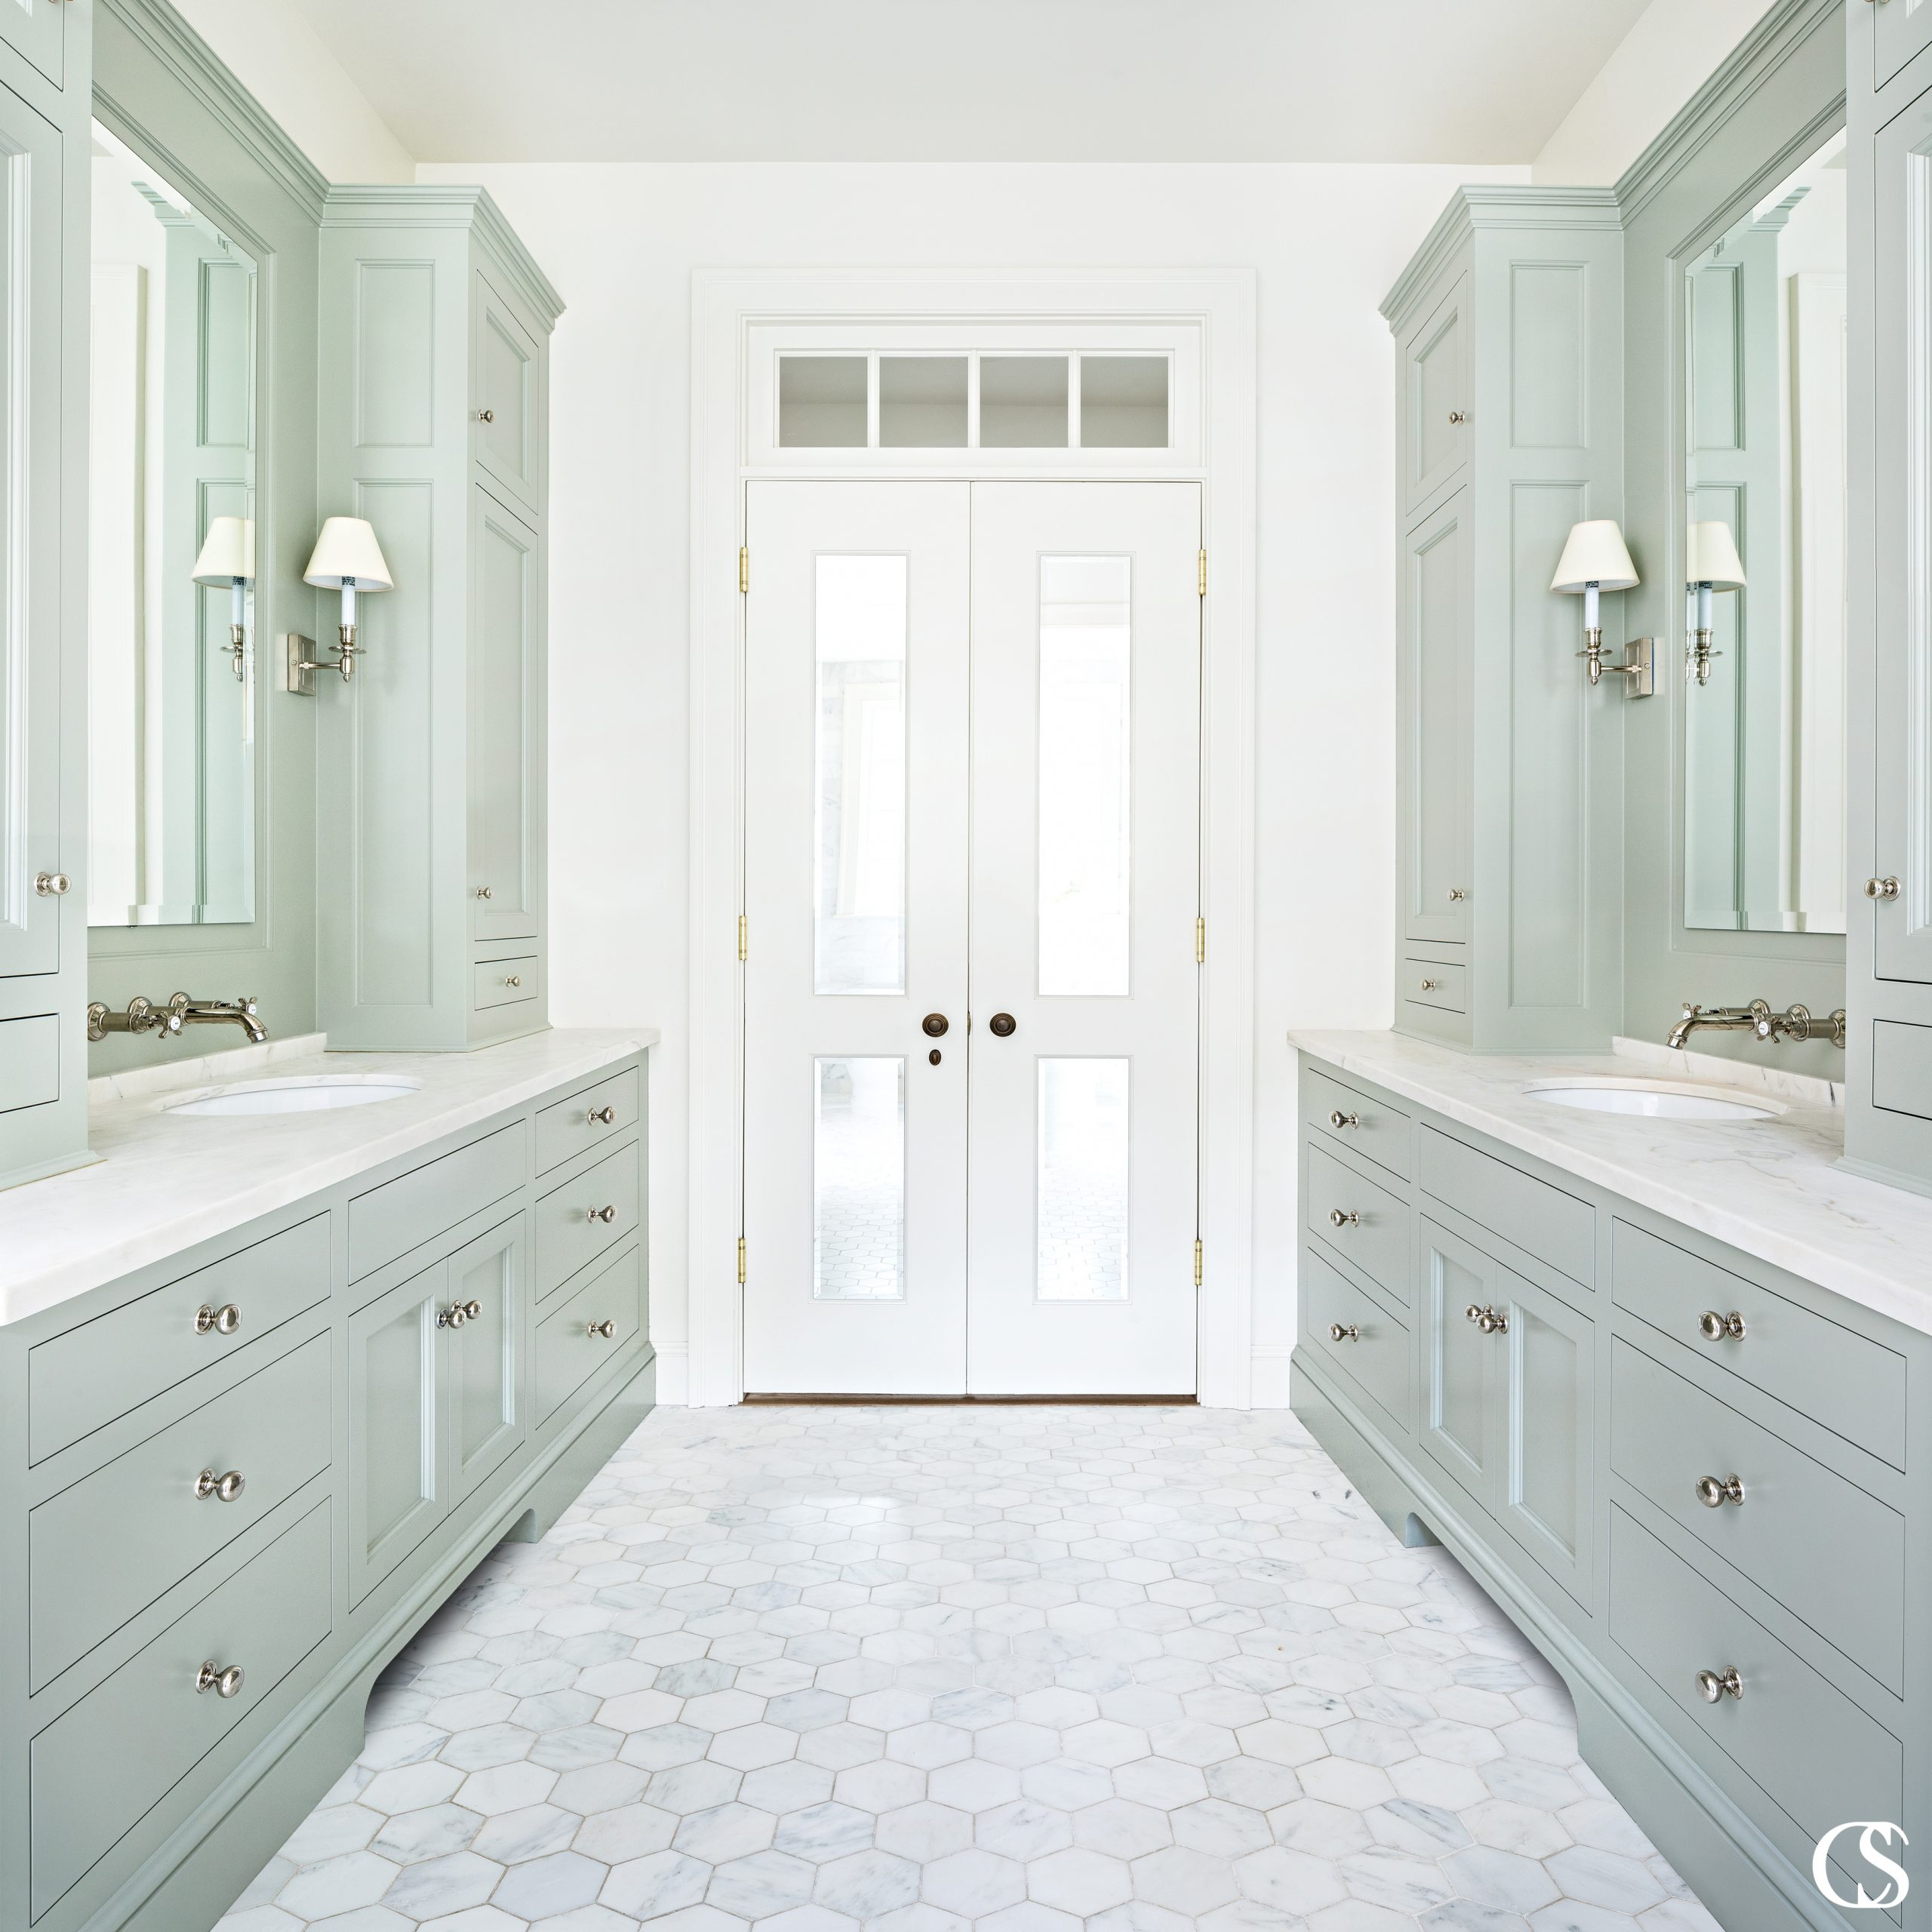 Some of the best bathroom cabinets are configured in a galley layout, which includes two vanity spaces separated by a pass-through. Each of these spaces can include sinks, or you can use one as a vanity area.